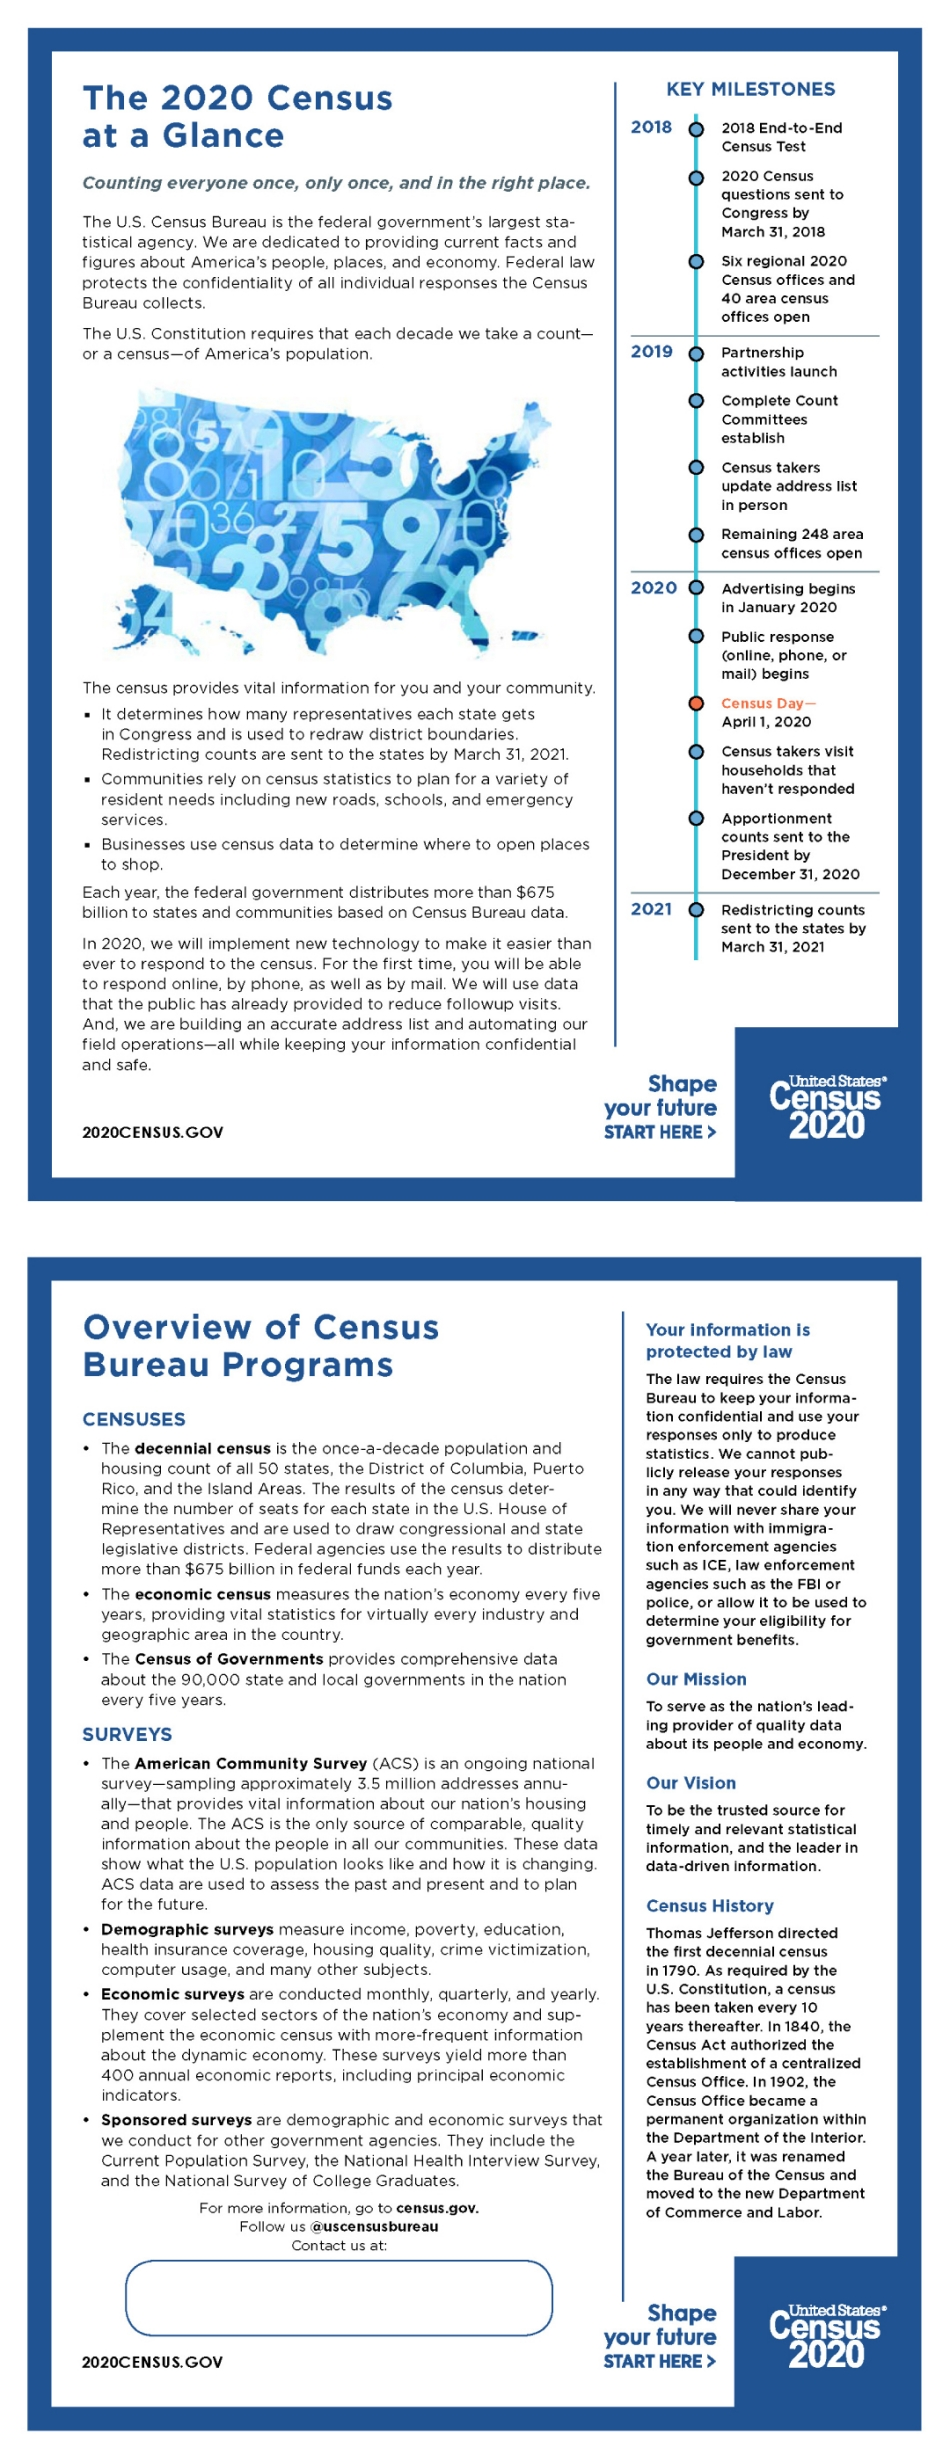 2020 Census at a glance infographic